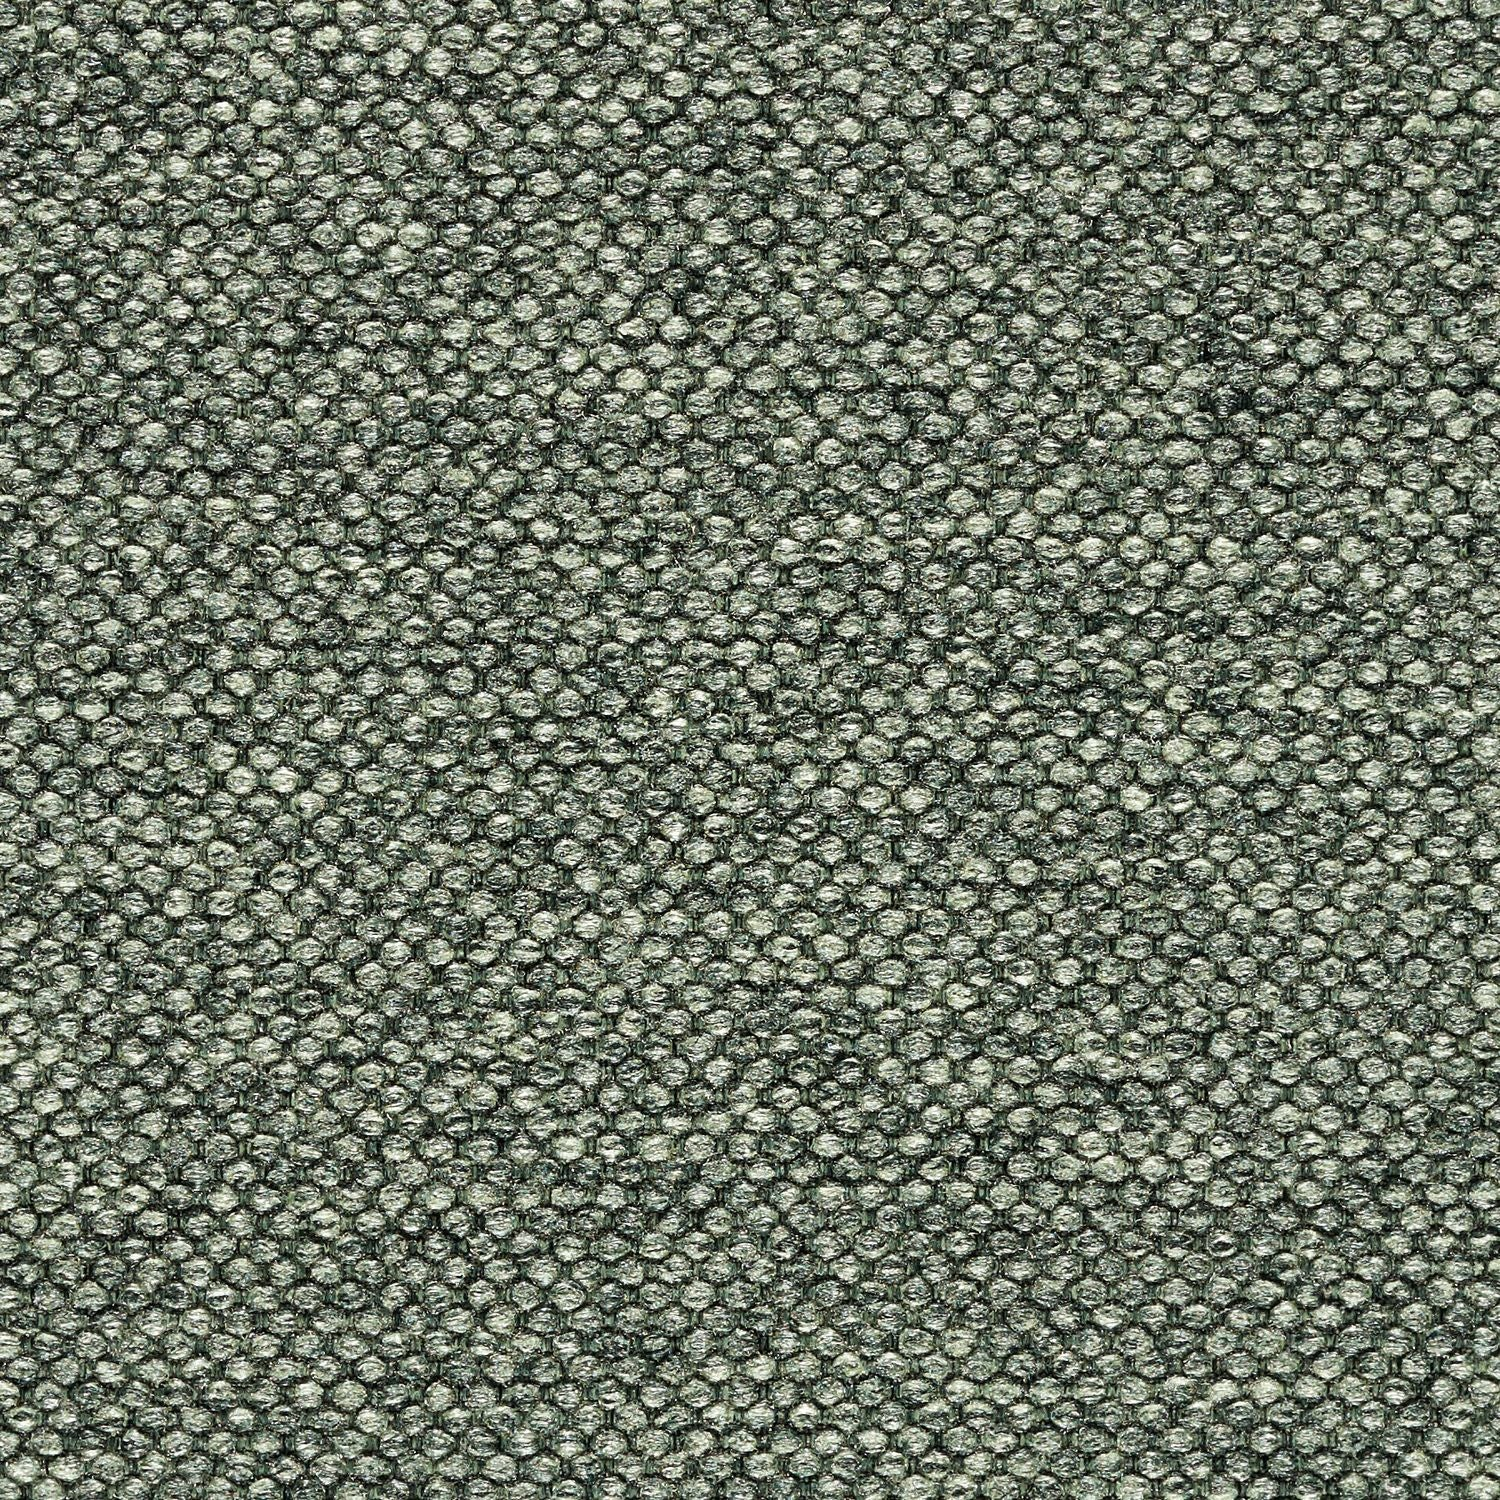 Digi Tweed - Loden Tweed - 4058 - 09